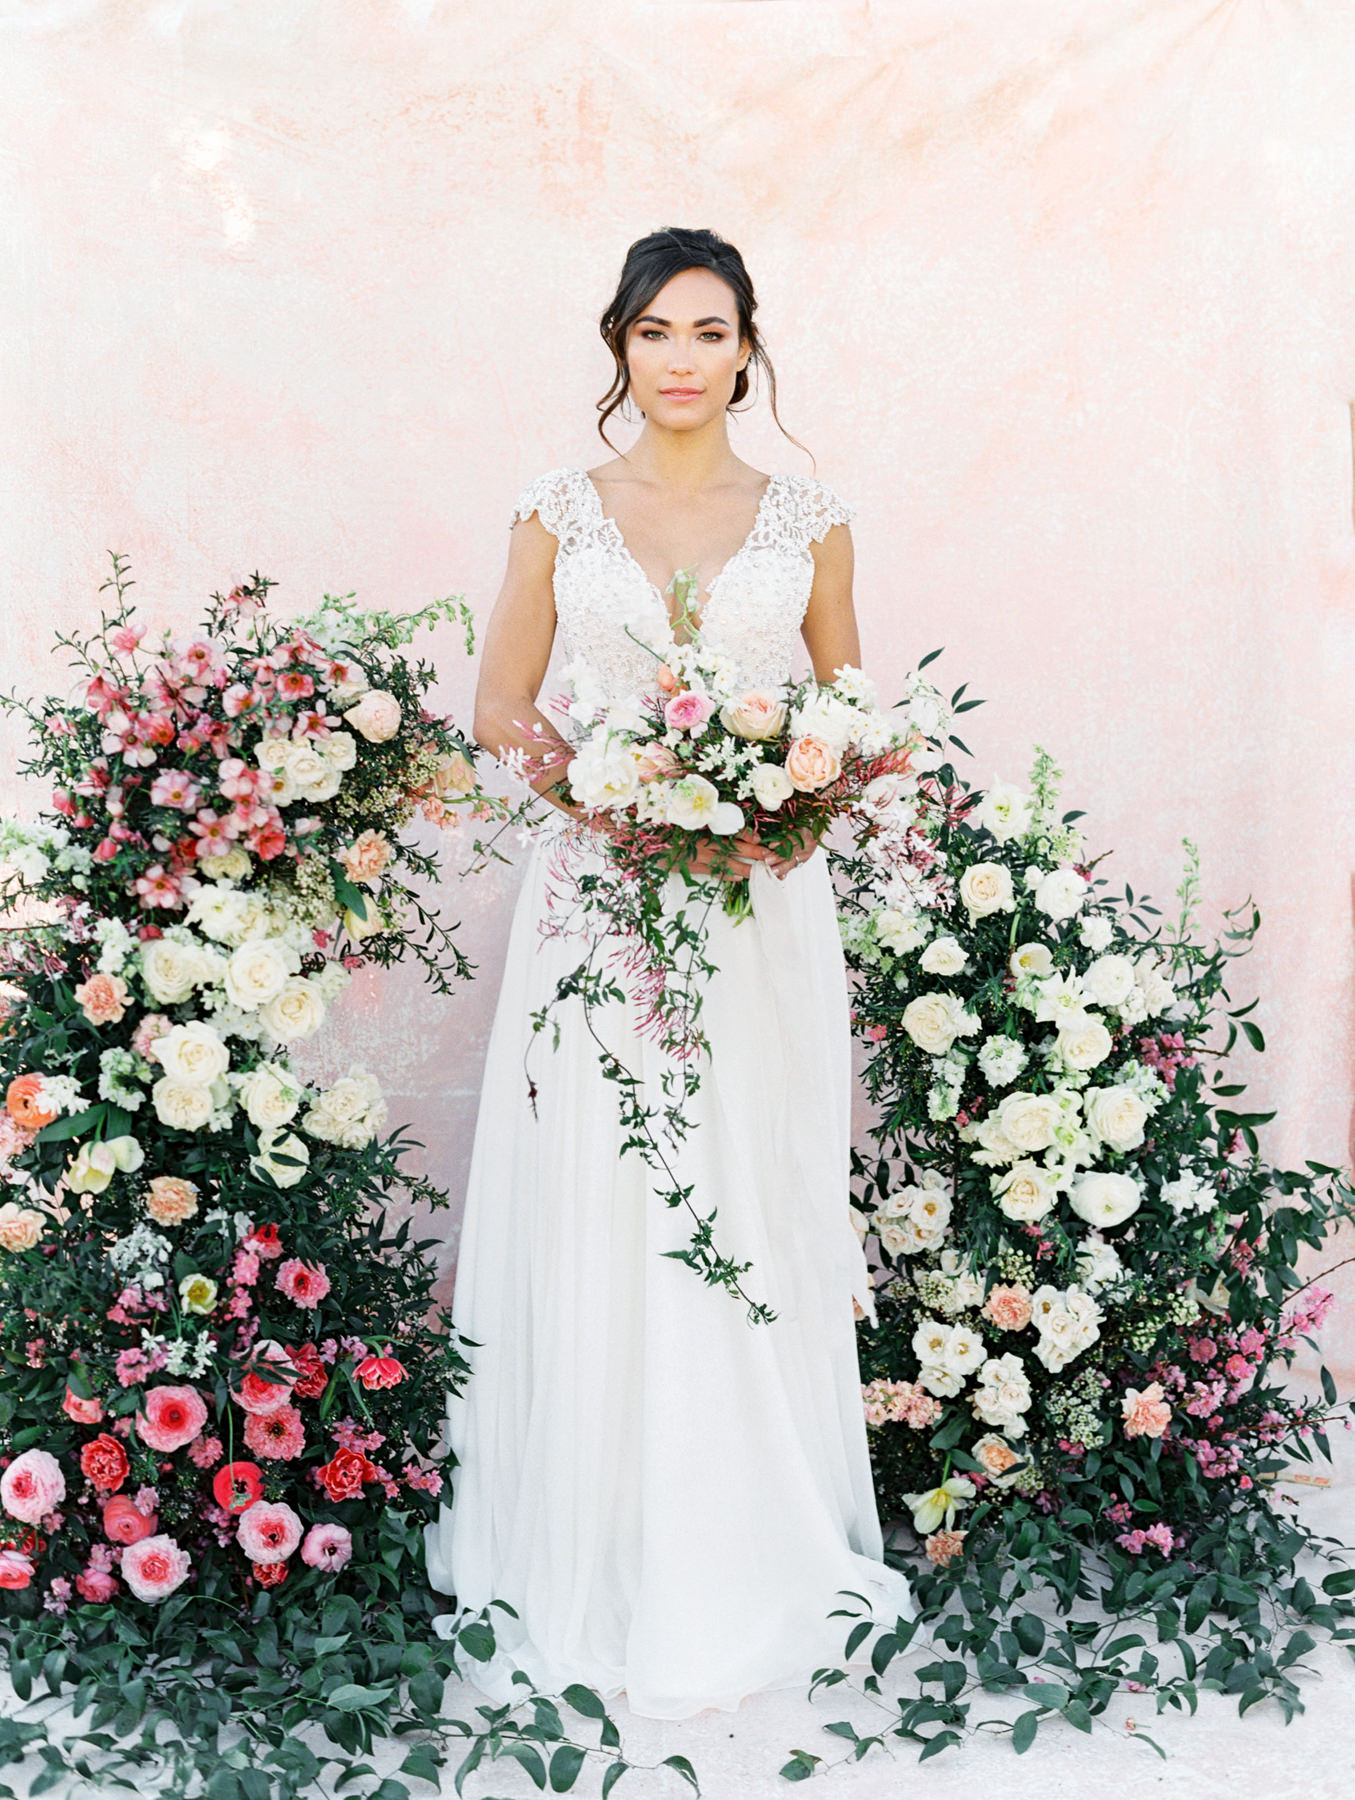 Asymmetrical floral arch with pink and ivory roses, sweet peas, ranunculus, carnations, and greenery with a pink painterly backdrop. Ivory pearl and opal beaded cap sleeve gown, plunging sweetheart neckline with illusion net insert and side cut outs, draped chiffon A-line skirt with slit. Hayley Paige Finley gown from The White Flower. Cavin Elizabeth Photography - film photographer in San Diego.